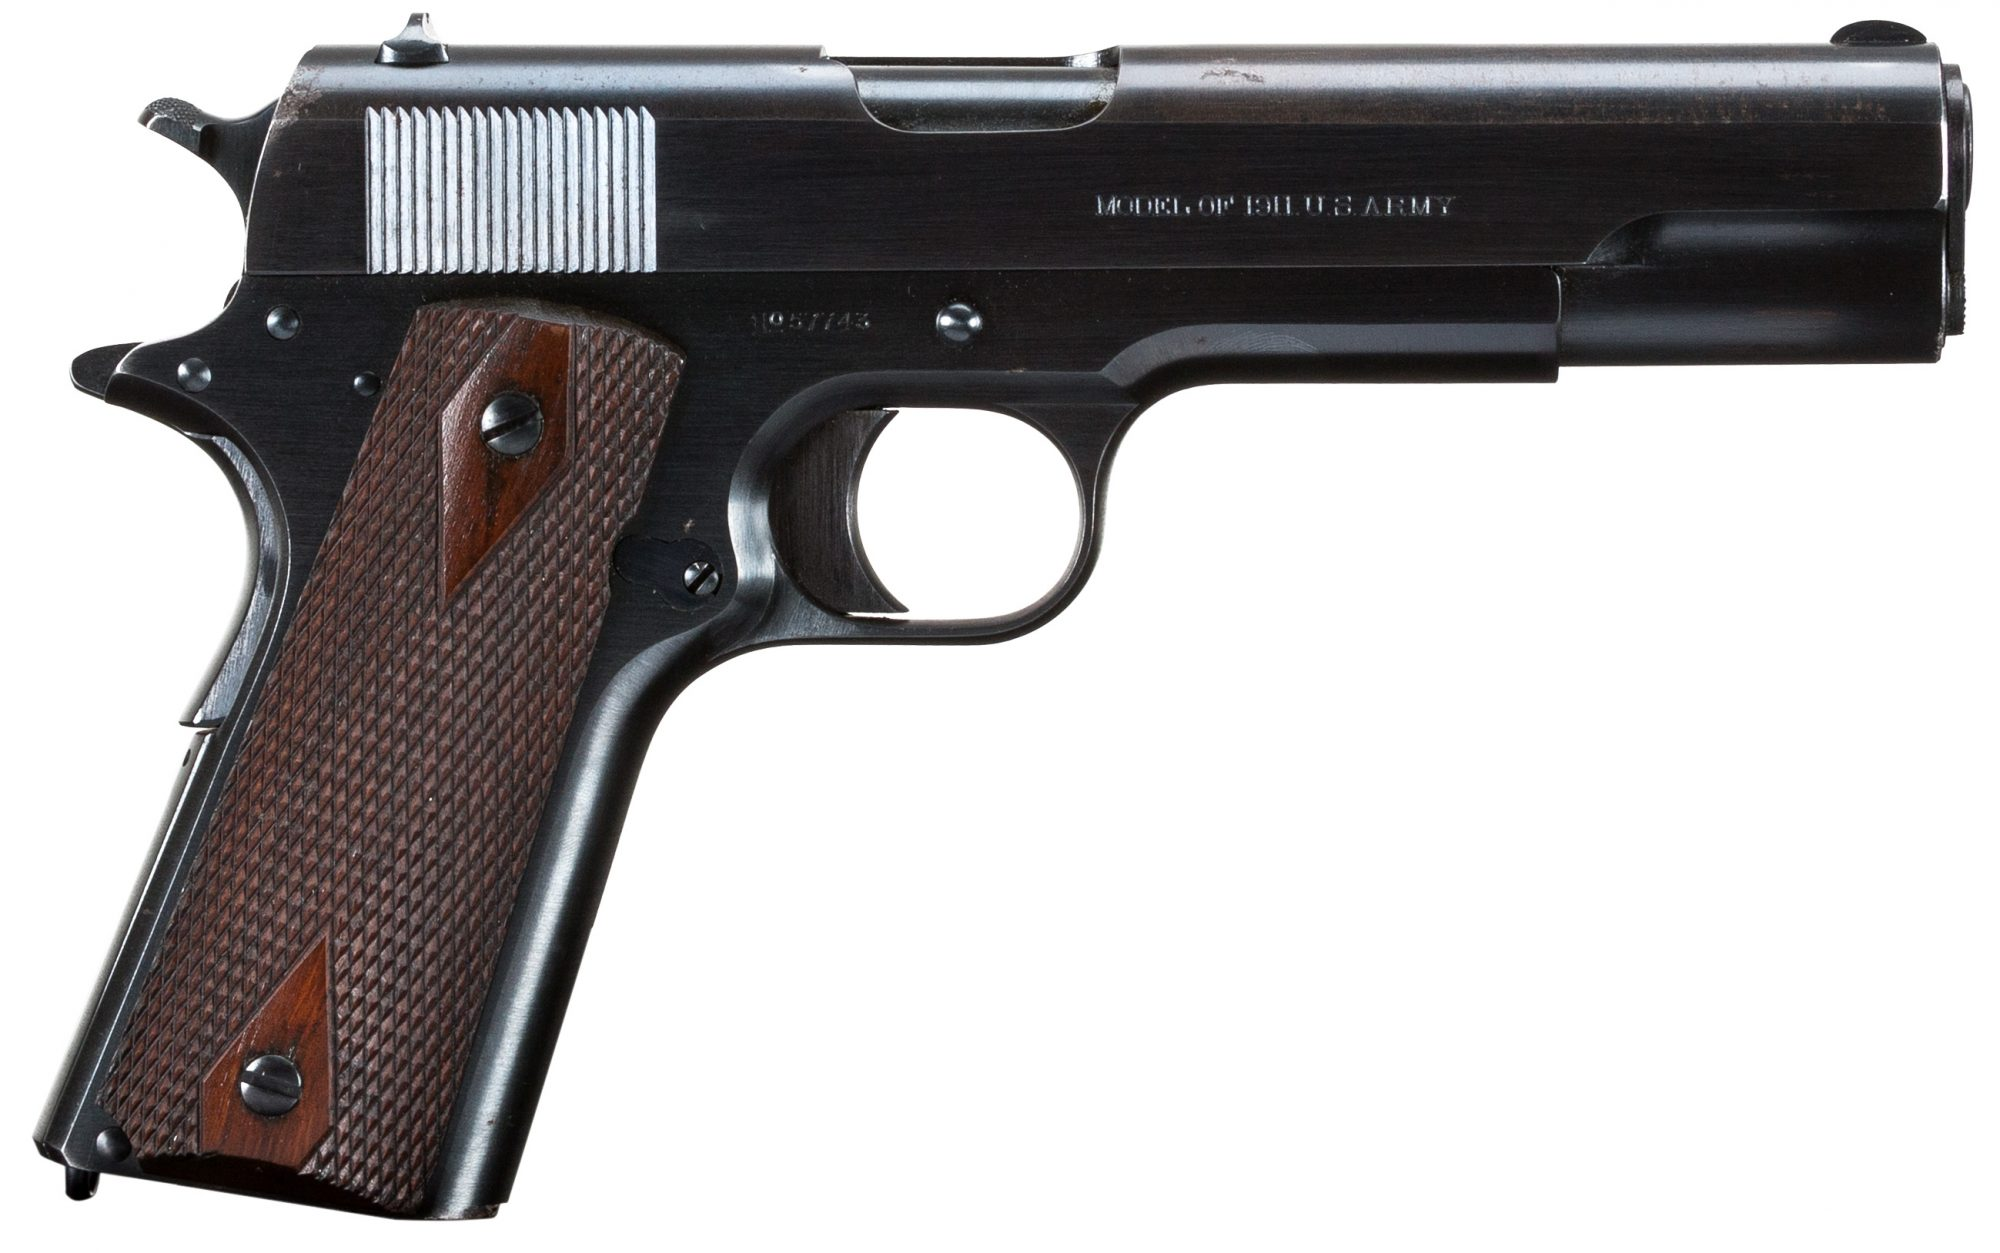 5290 Colt 1911 right side view